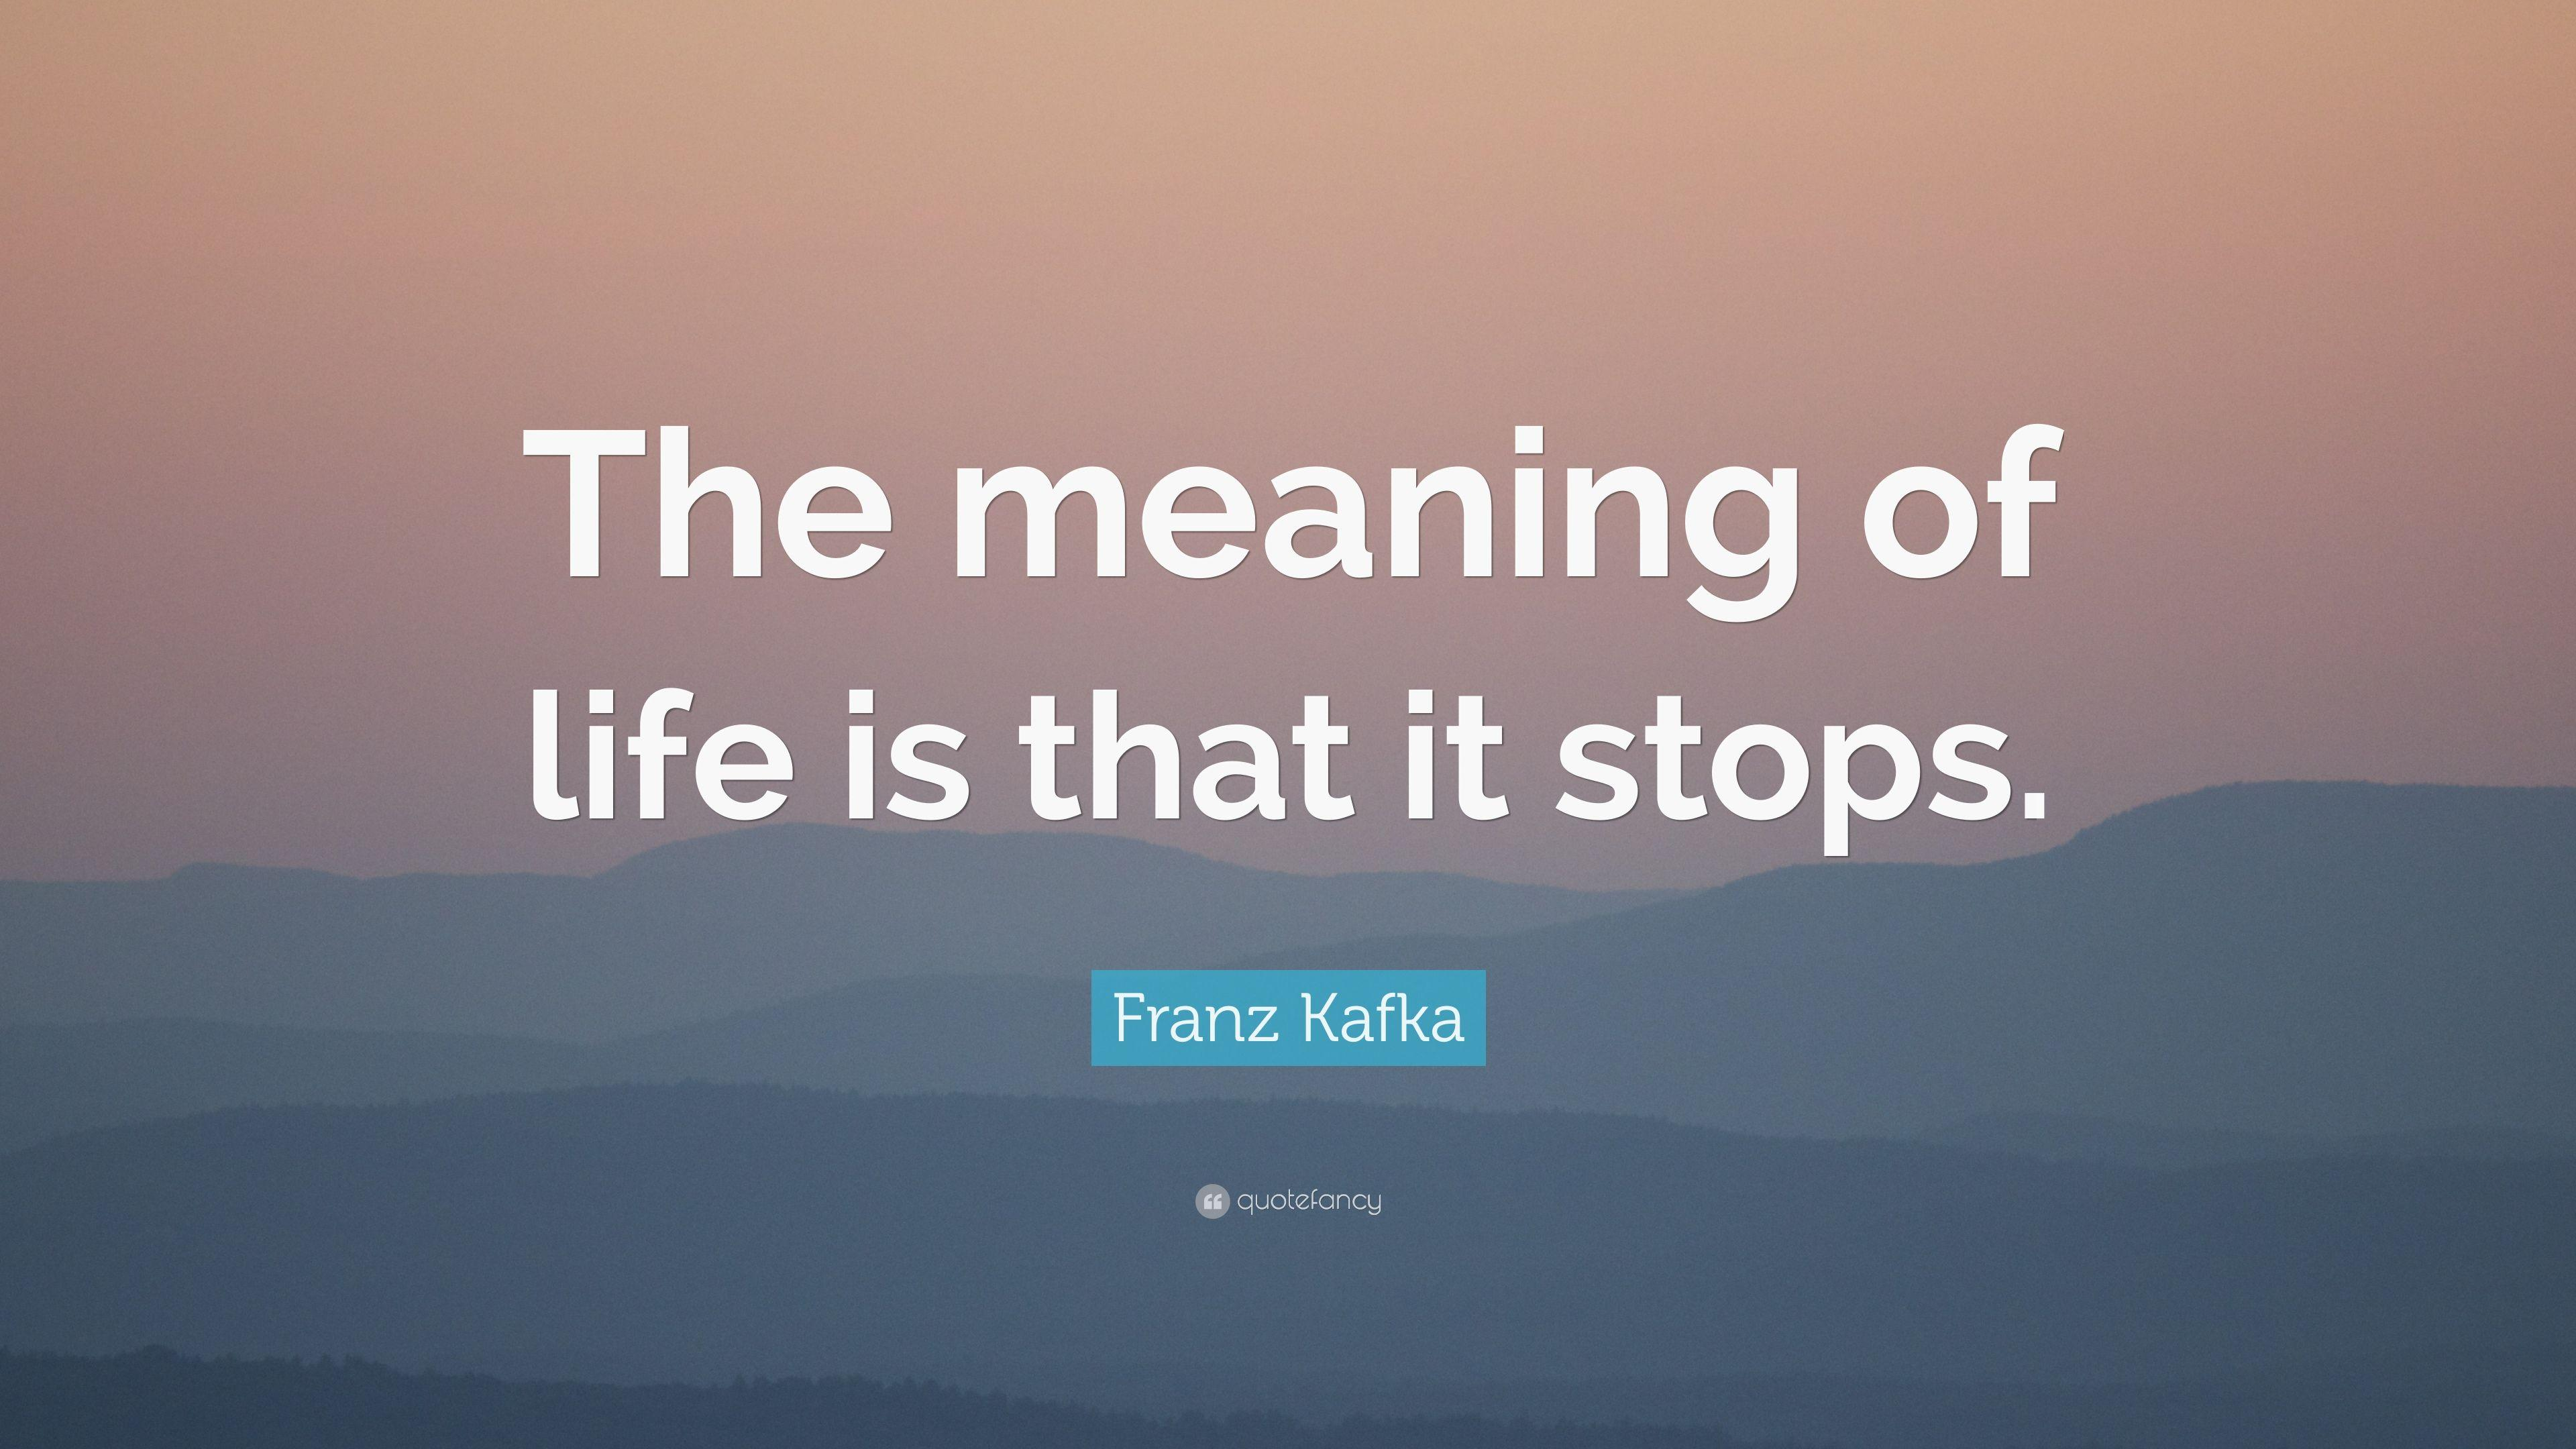 Kafka Quote Meaning Of Life: Meaning Of Life Quotes Wallpapers